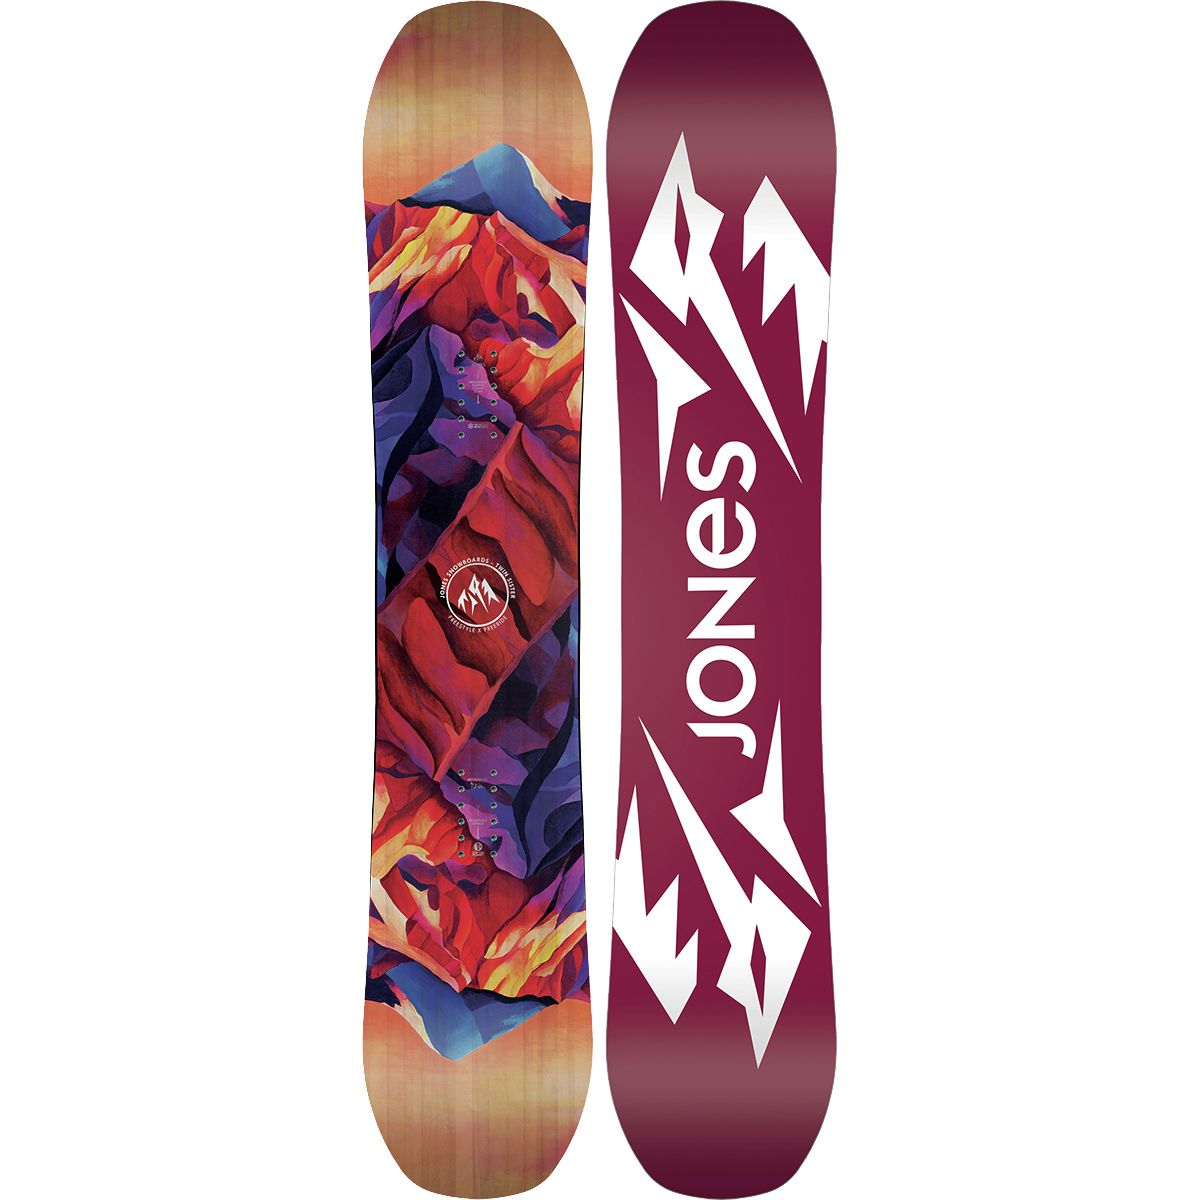 Jones Snowboards Twin Sister Snowboard - Women's One Color, 146cm